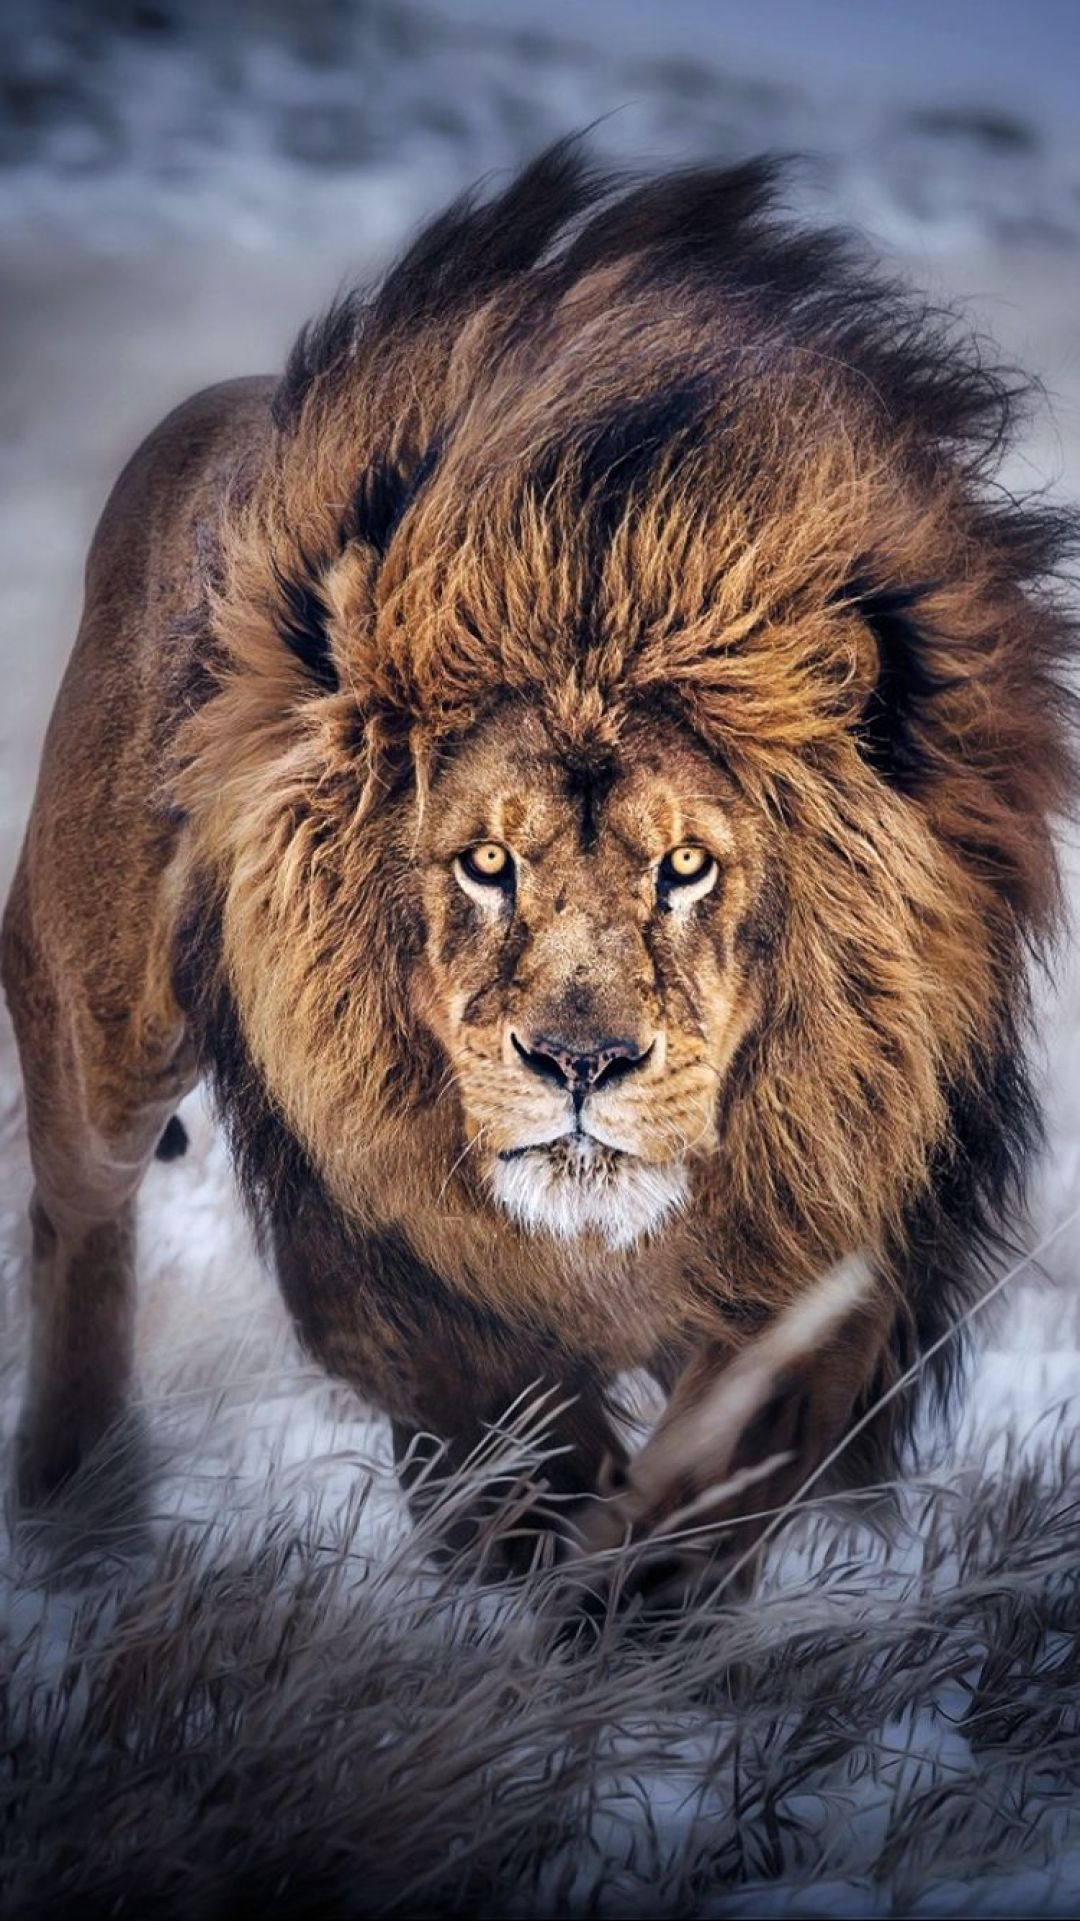 12100 Animals Birds Images Hd Photos 1080p Wallpapers Android Iphone 2020 Lion Pictures Lion Wallpaper Lion